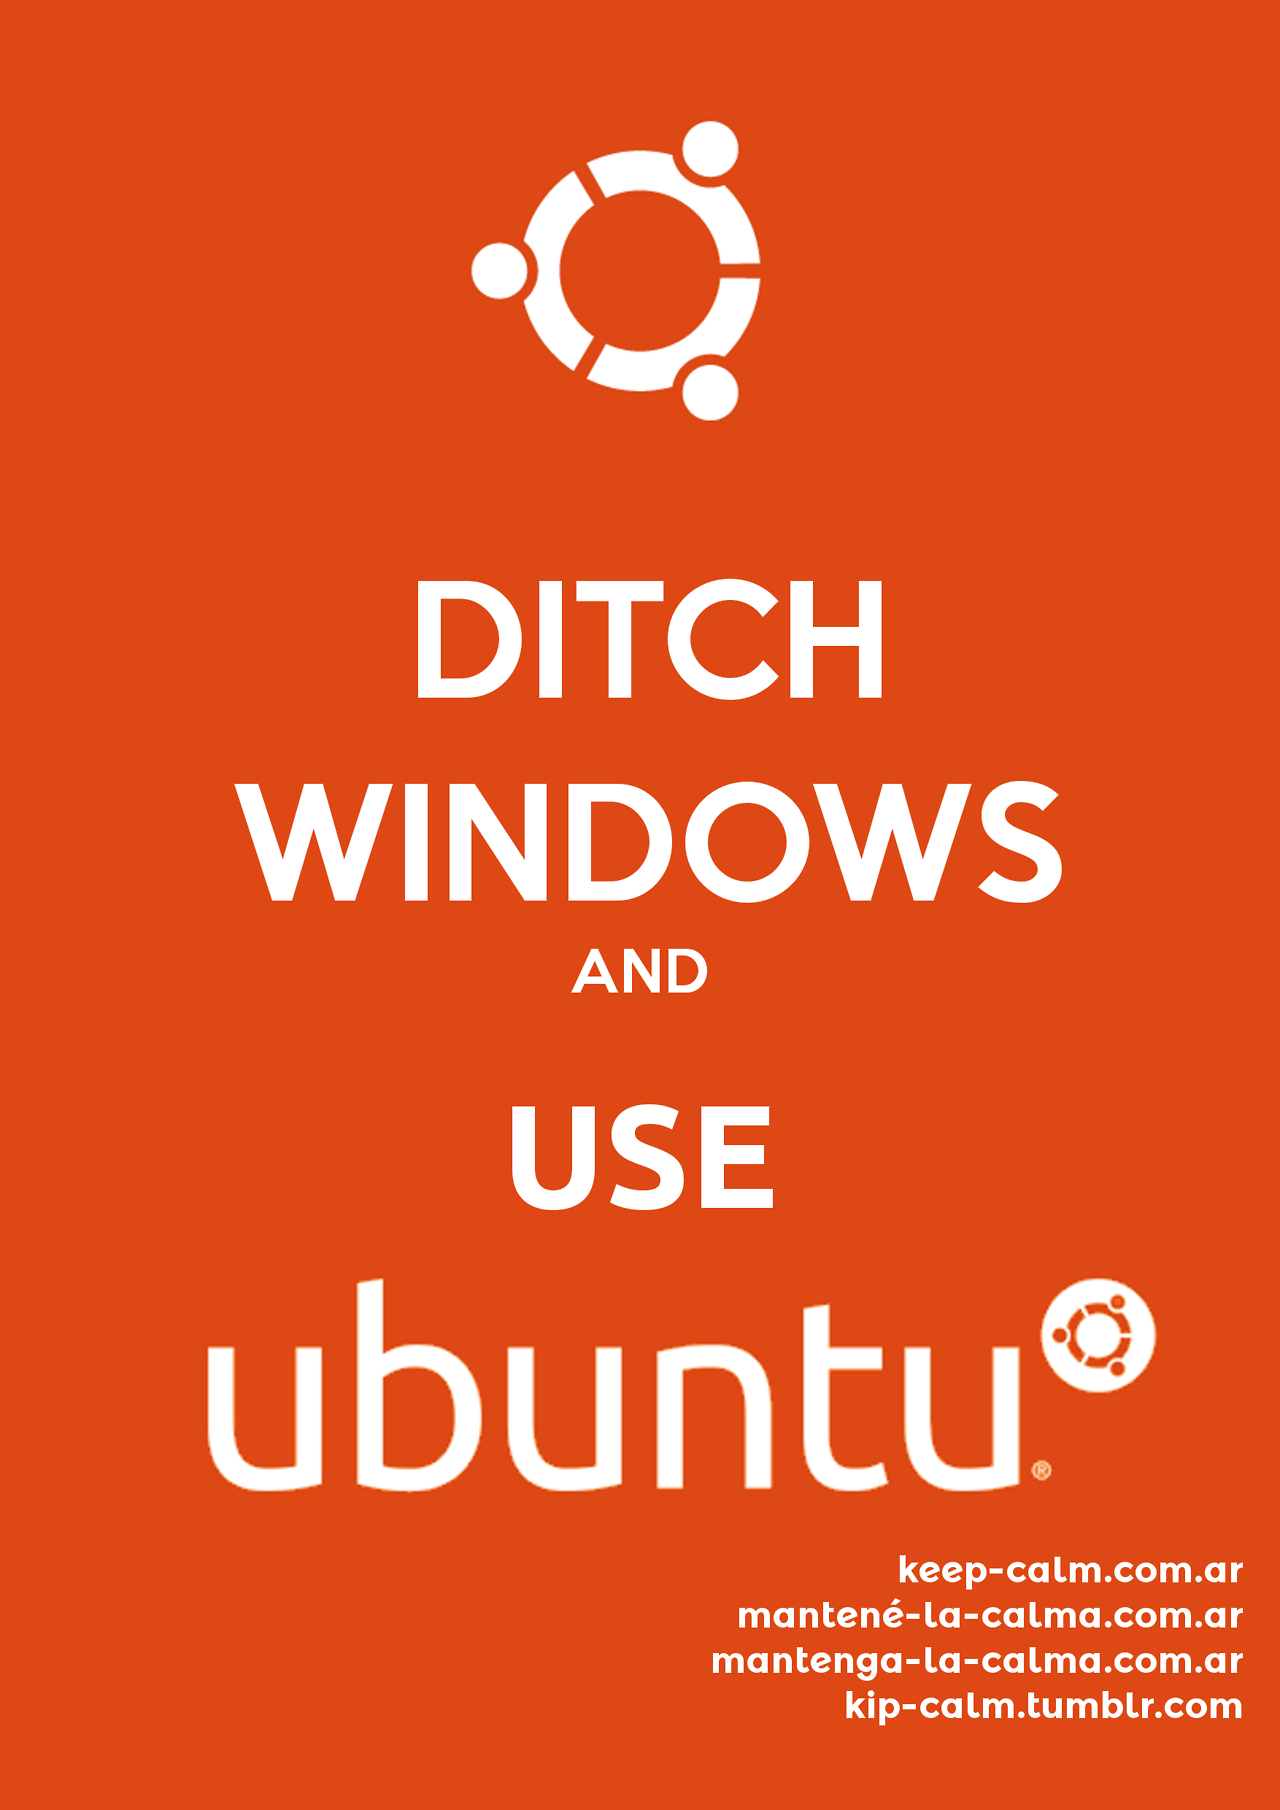 Ditch Windows and use Ubuntu    www.ubuntu.com